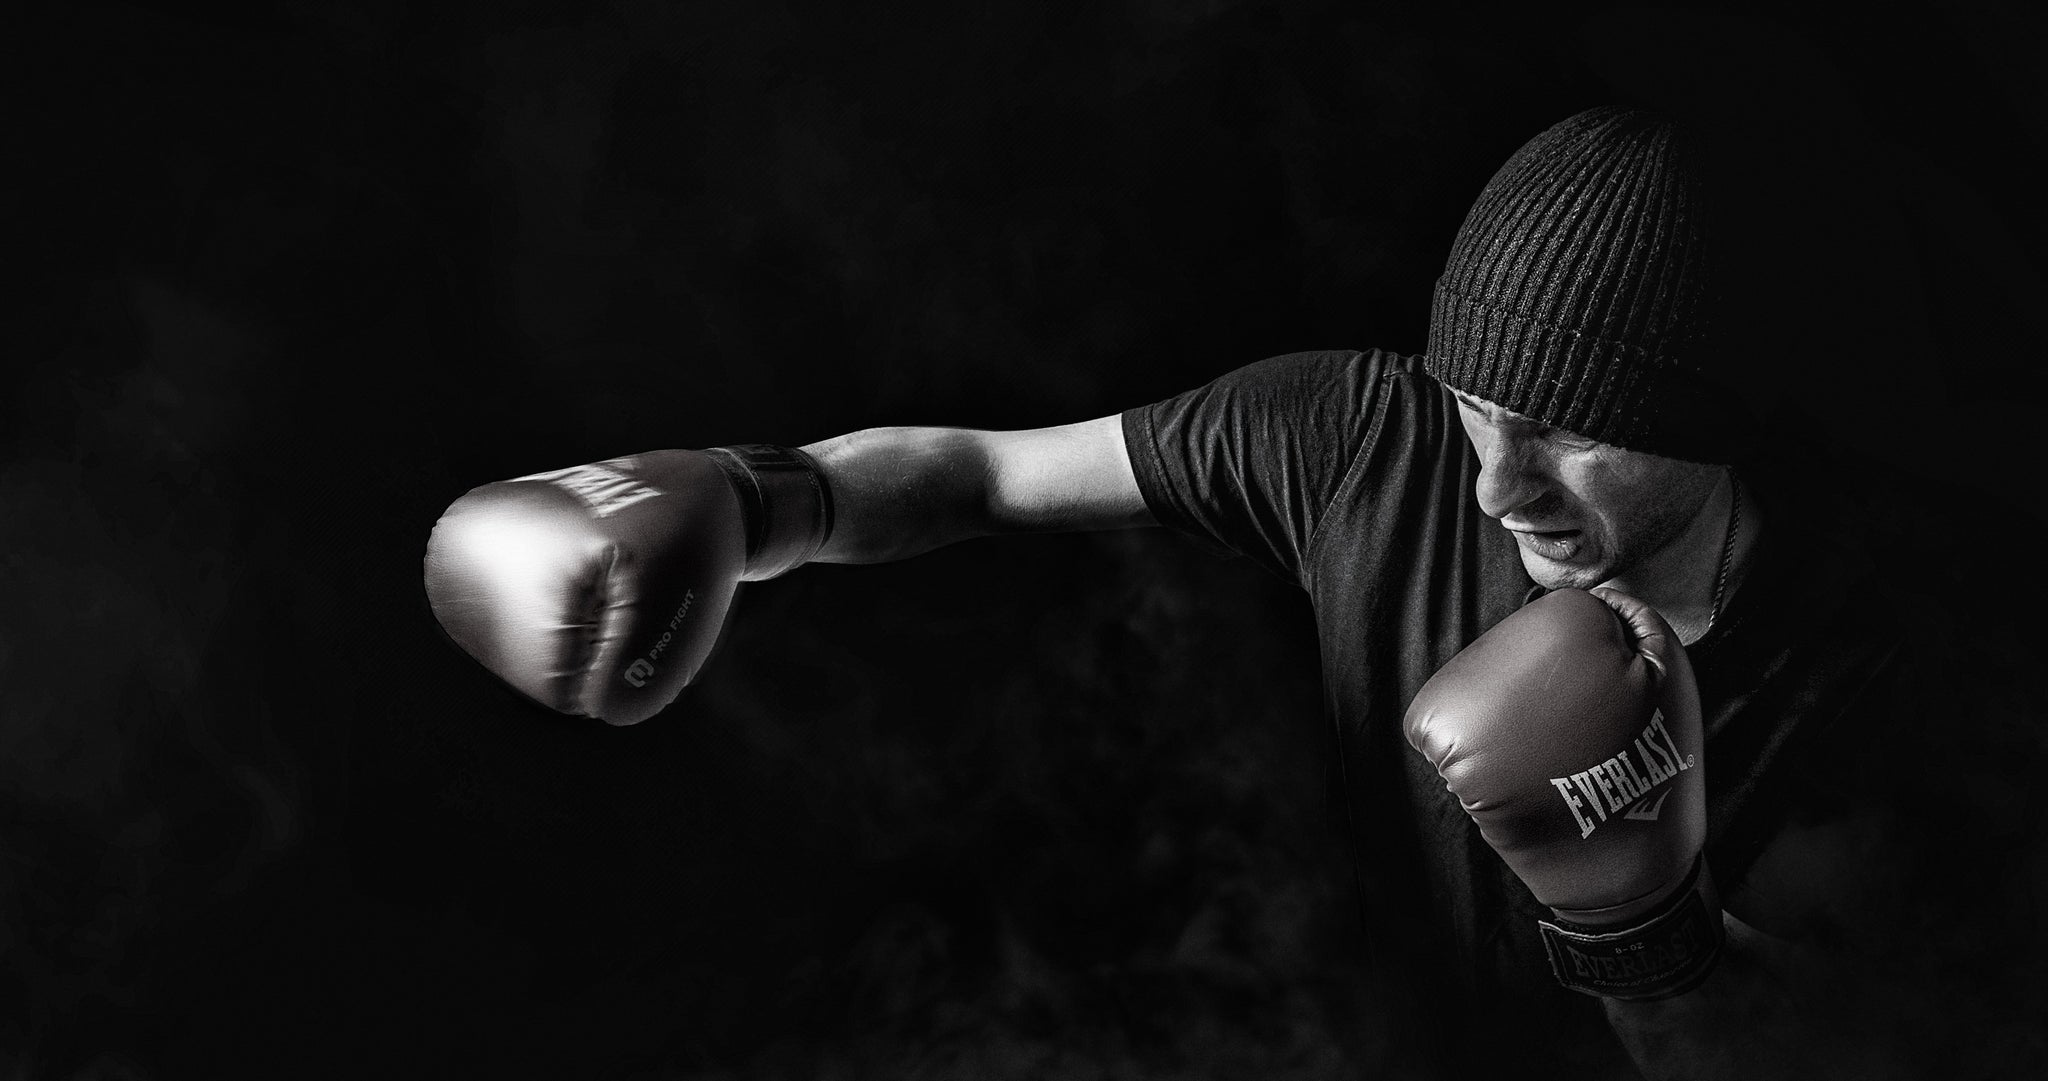 boxing equipment | boxing gift ideas | boxing gloves, kid boxer, women boxers